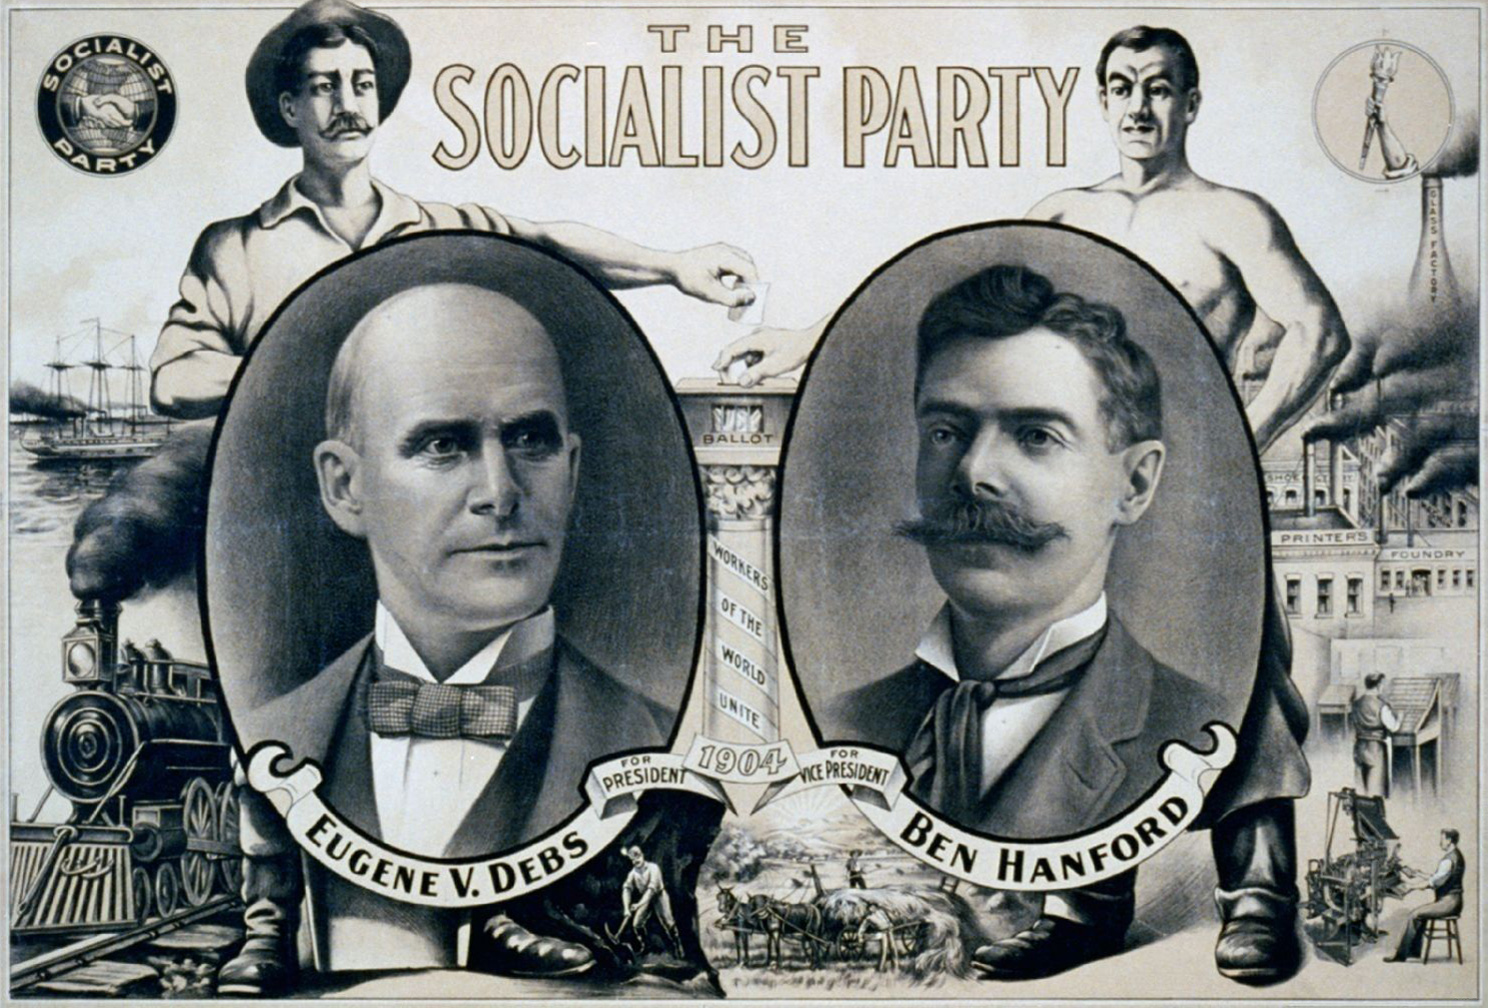 a history of the socialist party in the united states Dsa at 24,000 members in july 2017 is the largest socialist organization in the united states since the communist party before its implosion in 1956 after the khrushchev revelations about stalin most young people joining the organization want to be active, and our new chapters across the country have already incorporated thousands of members.